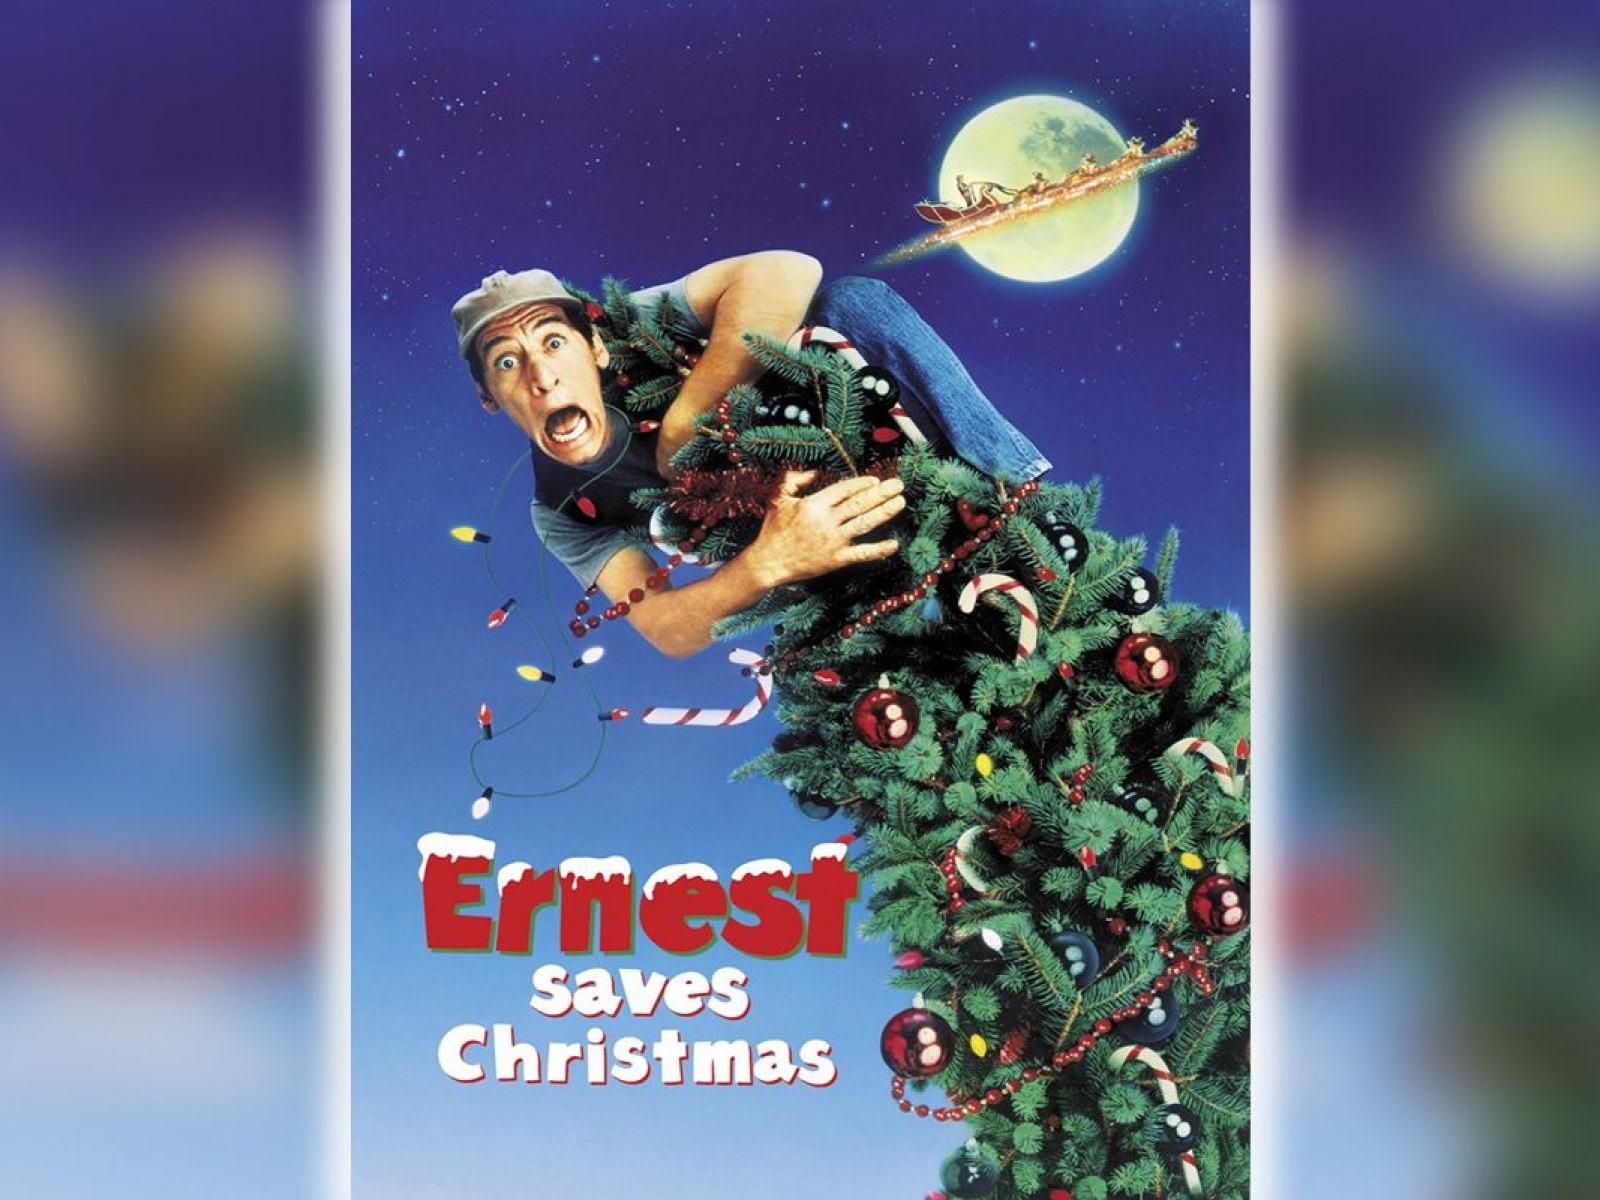 Ernest Saves Christmas Elf.Thanksgiving And Christmas Turkeys The Worst Holiday Movies